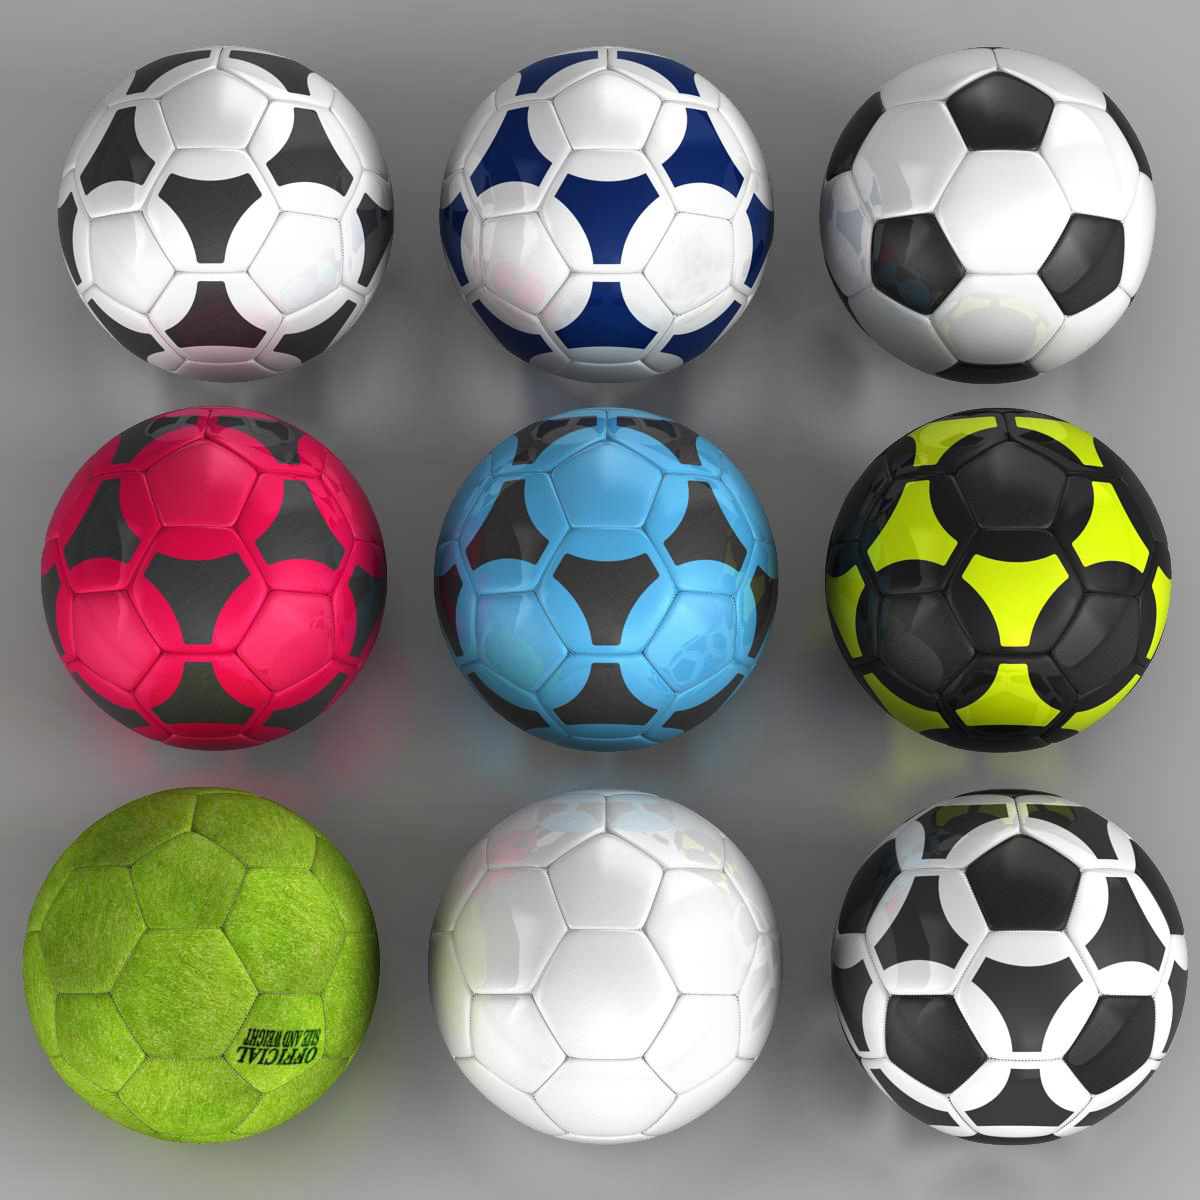 set futbolball 3d model 3ds max fbx c4d ma mb obj 205436